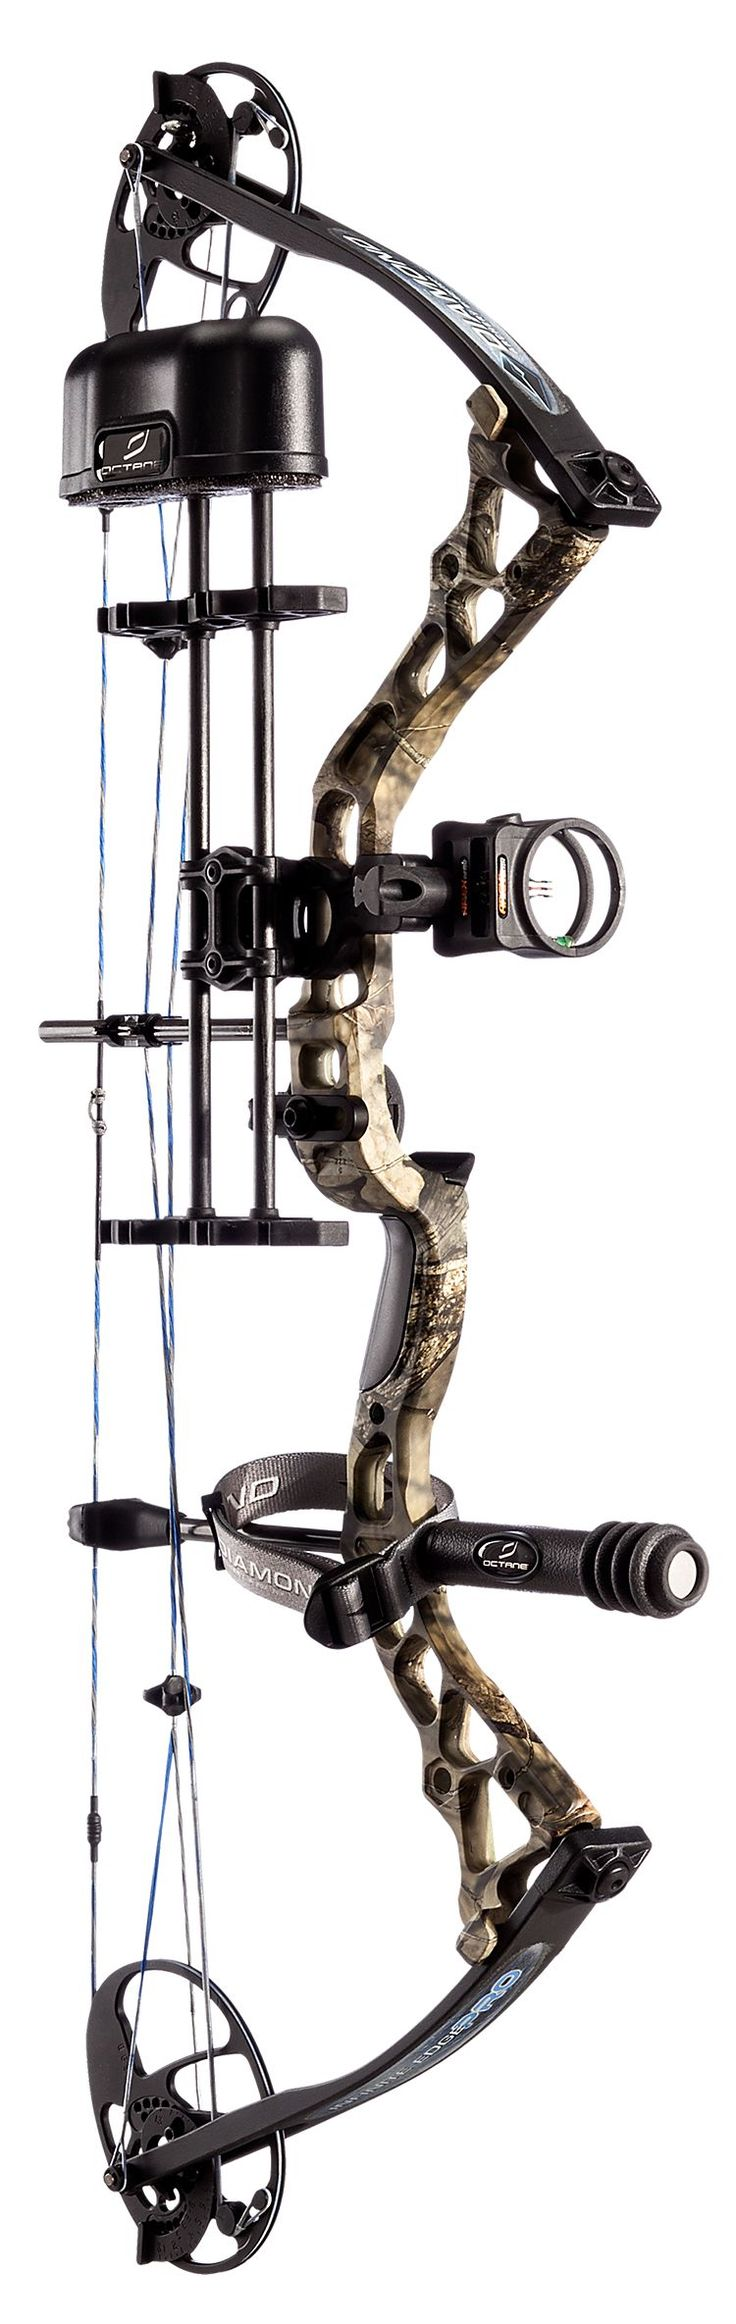 Diamond Infinite Edge Pro Compound Bow Package | Bass Pro Shops